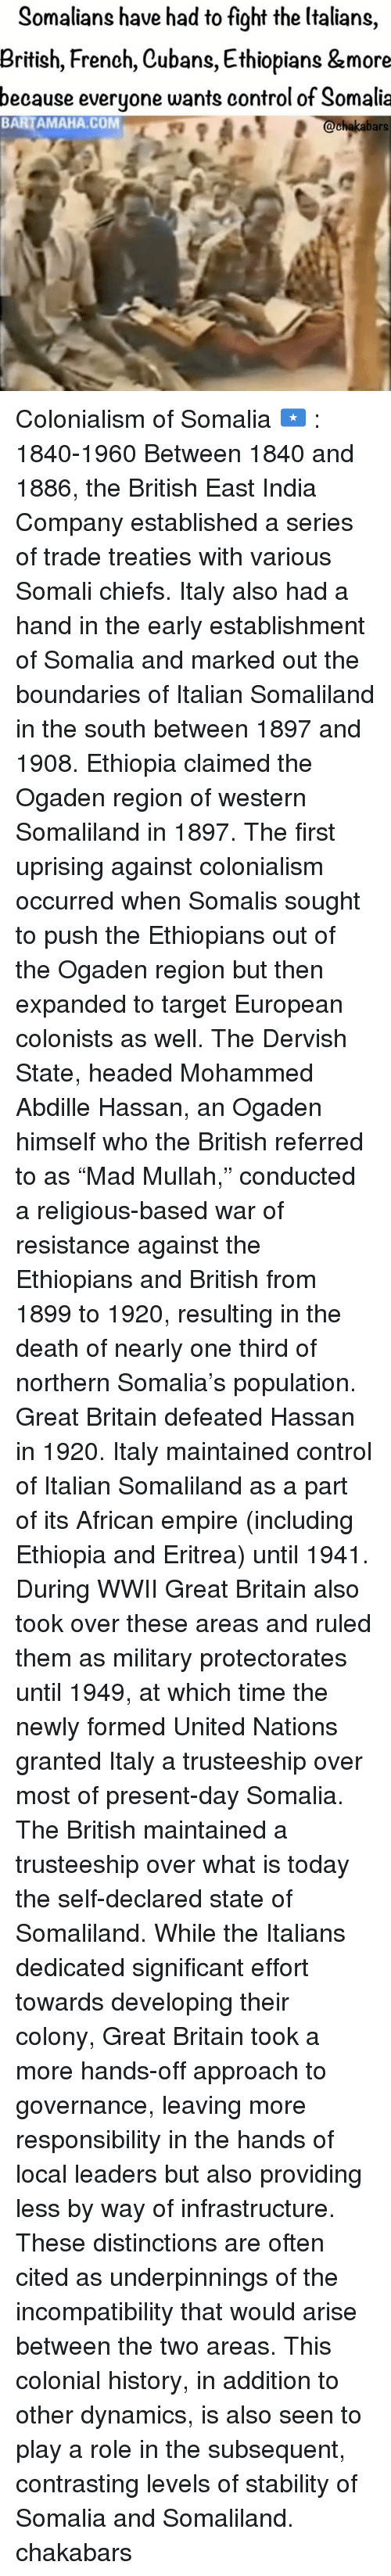 """colonialism: Somalians have had to fight the Italians  British, French, Cubans, Ethiopians &more  because everyone wants control of Somalia  BARTAMAHA, COM  chakabars Colonialism of Somalia 🇸🇴 : 1840-1960 Between 1840 and 1886, the British East India Company established a series of trade treaties with various Somali chiefs. Italy also had a hand in the early establishment of Somalia and marked out the boundaries of Italian Somaliland in the south between 1897 and 1908. Ethiopia claimed the Ogaden region of western Somaliland in 1897. The first uprising against colonialism occurred when Somalis sought to push the Ethiopians out of the Ogaden region but then expanded to target European colonists as well. The Dervish State, headed Mohammed Abdille Hassan, an Ogaden himself who the British referred to as """"Mad Mullah,"""" conducted a religious-based war of resistance against the Ethiopians and British from 1899 to 1920, resulting in the death of nearly one third of northern Somalia's population. Great Britain defeated Hassan in 1920. Italy maintained control of Italian Somaliland as a part of its African empire (including Ethiopia and Eritrea) until 1941. During WWII Great Britain also took over these areas and ruled them as military protectorates until 1949, at which time the newly formed United Nations granted Italy a trusteeship over most of present-day Somalia. The British maintained a trusteeship over what is today the self-declared state of Somaliland. While the Italians dedicated significant effort towards developing their colony, Great Britain took a more hands-off approach to governance, leaving more responsibility in the hands of local leaders but also providing less by way of infrastructure. These distinctions are often cited as underpinnings of the incompatibility that would arise between the two areas. This colonial history, in addition to other dynamics, is also seen to play a role in the subsequent, contrasting levels of stability of Somalia and Somaliland. c"""